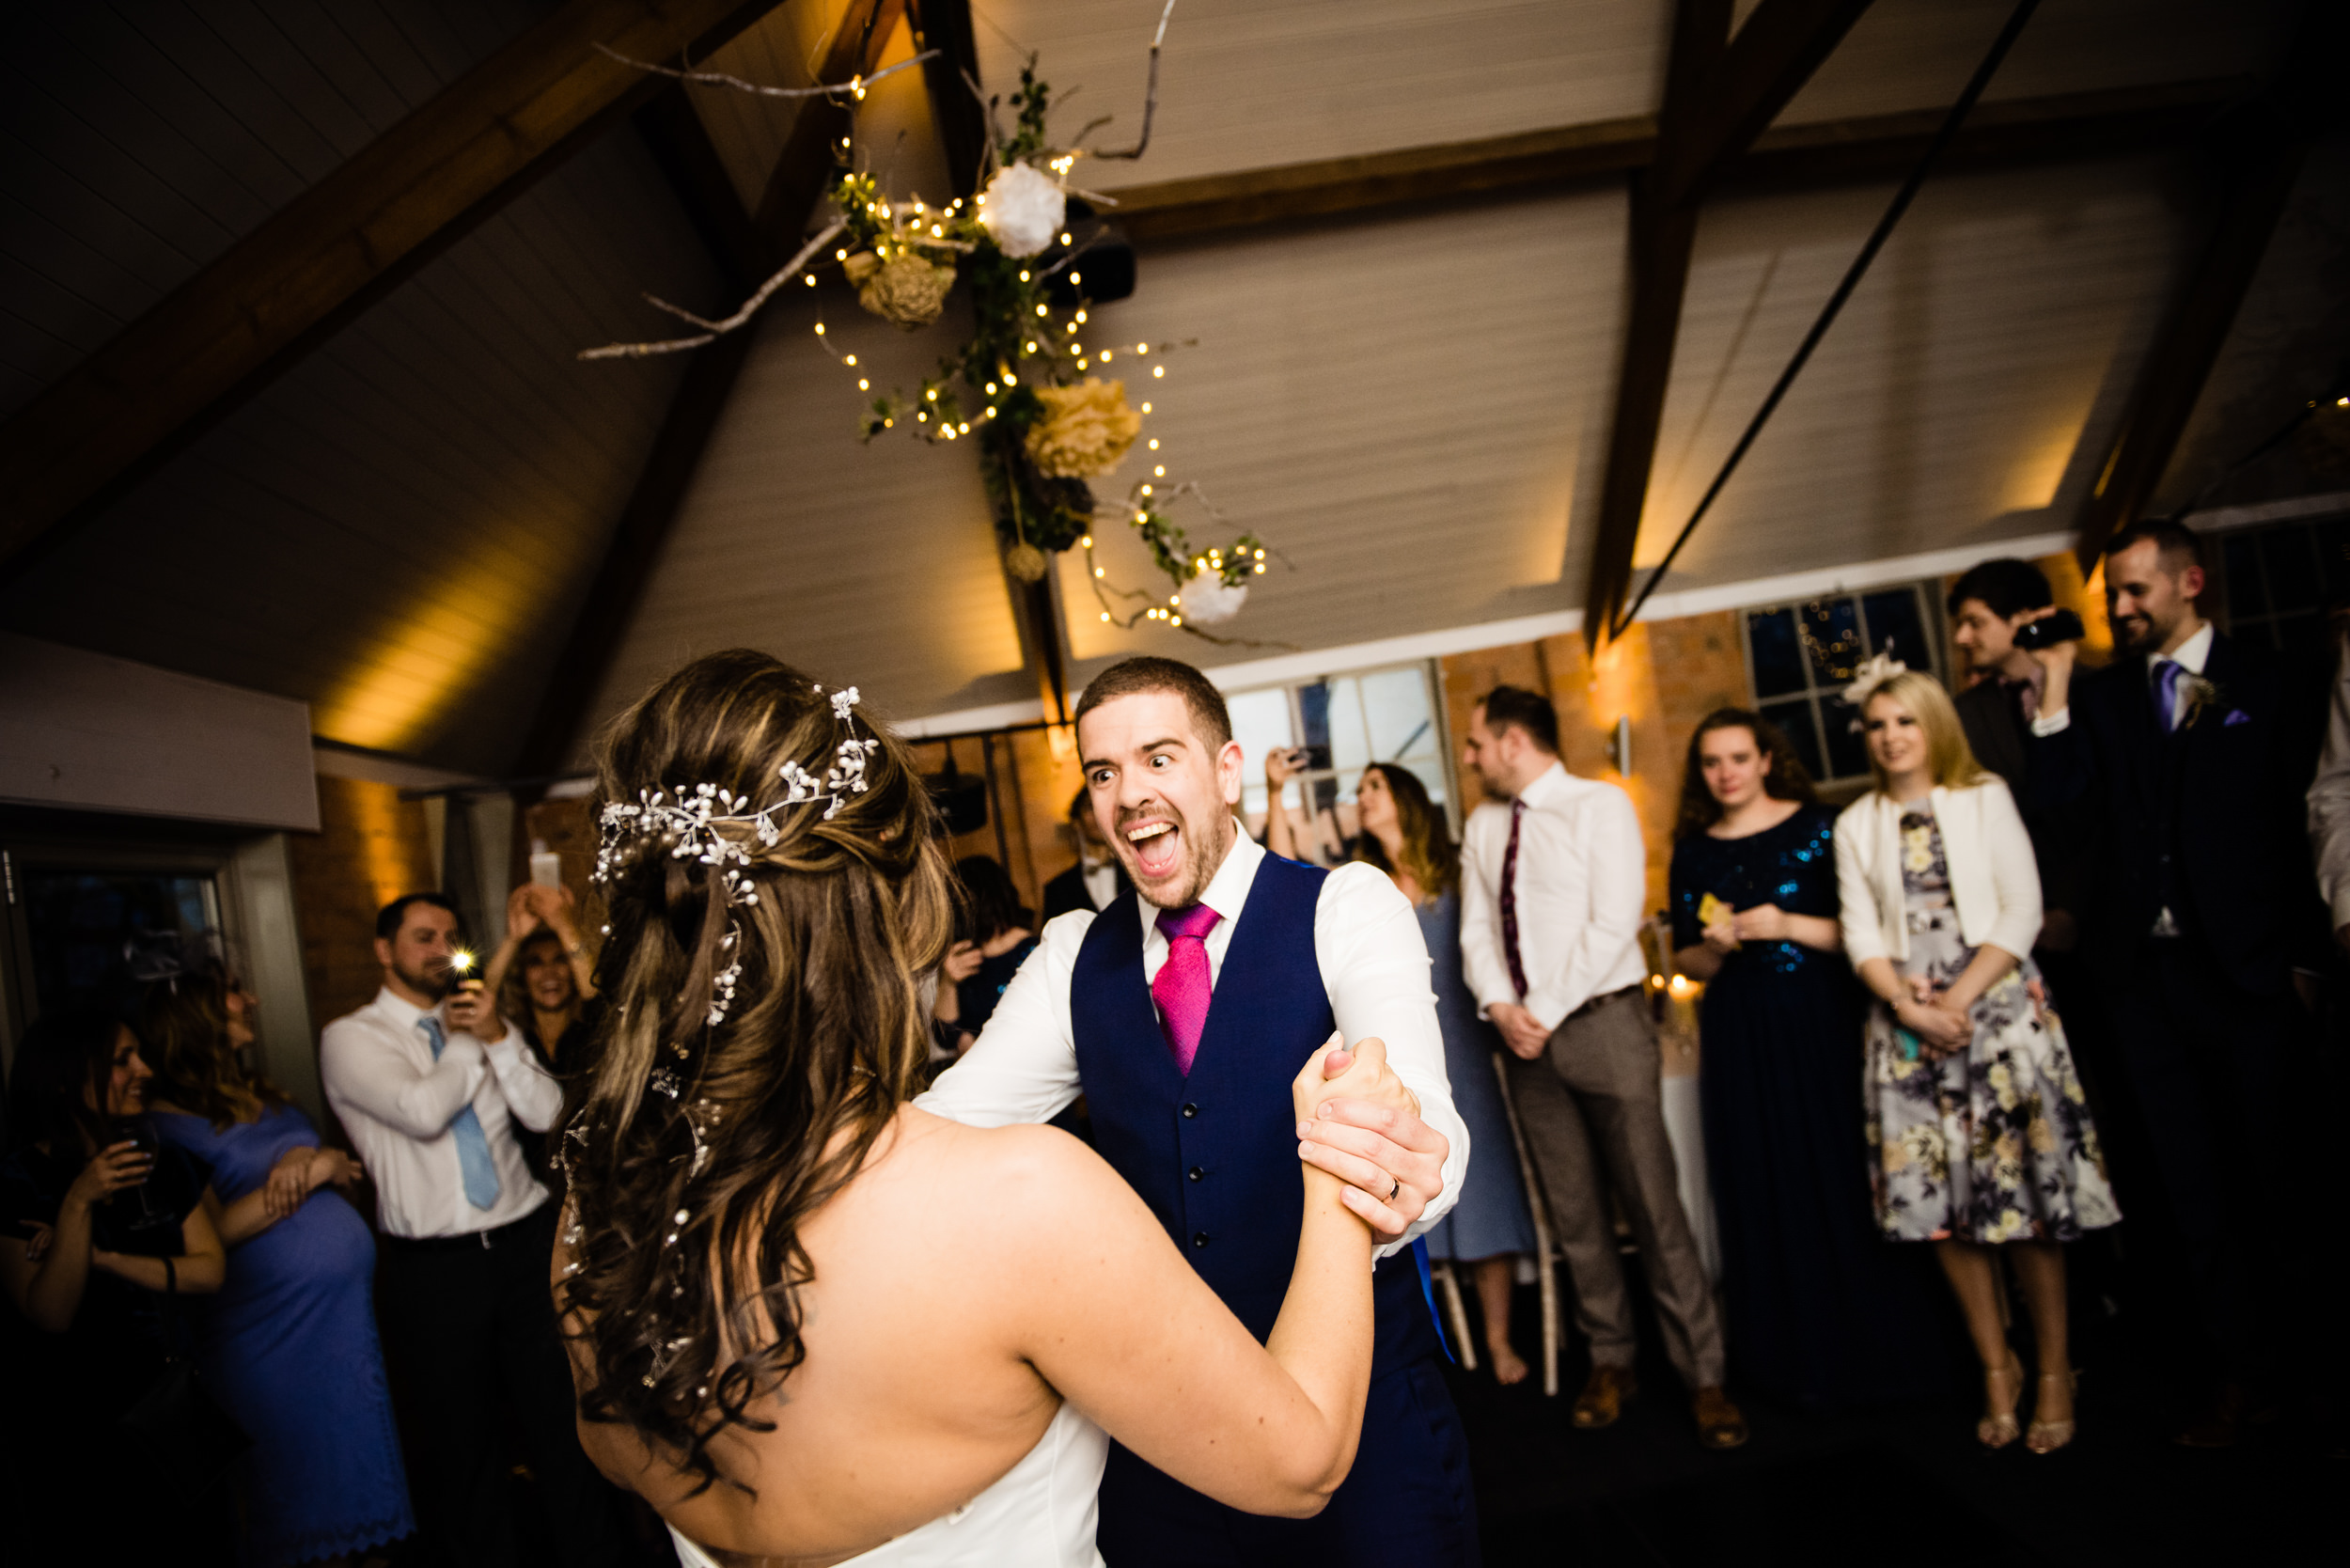 Groom dancing wildly with bride during Wedding First dance at Grafton Manor Redditch